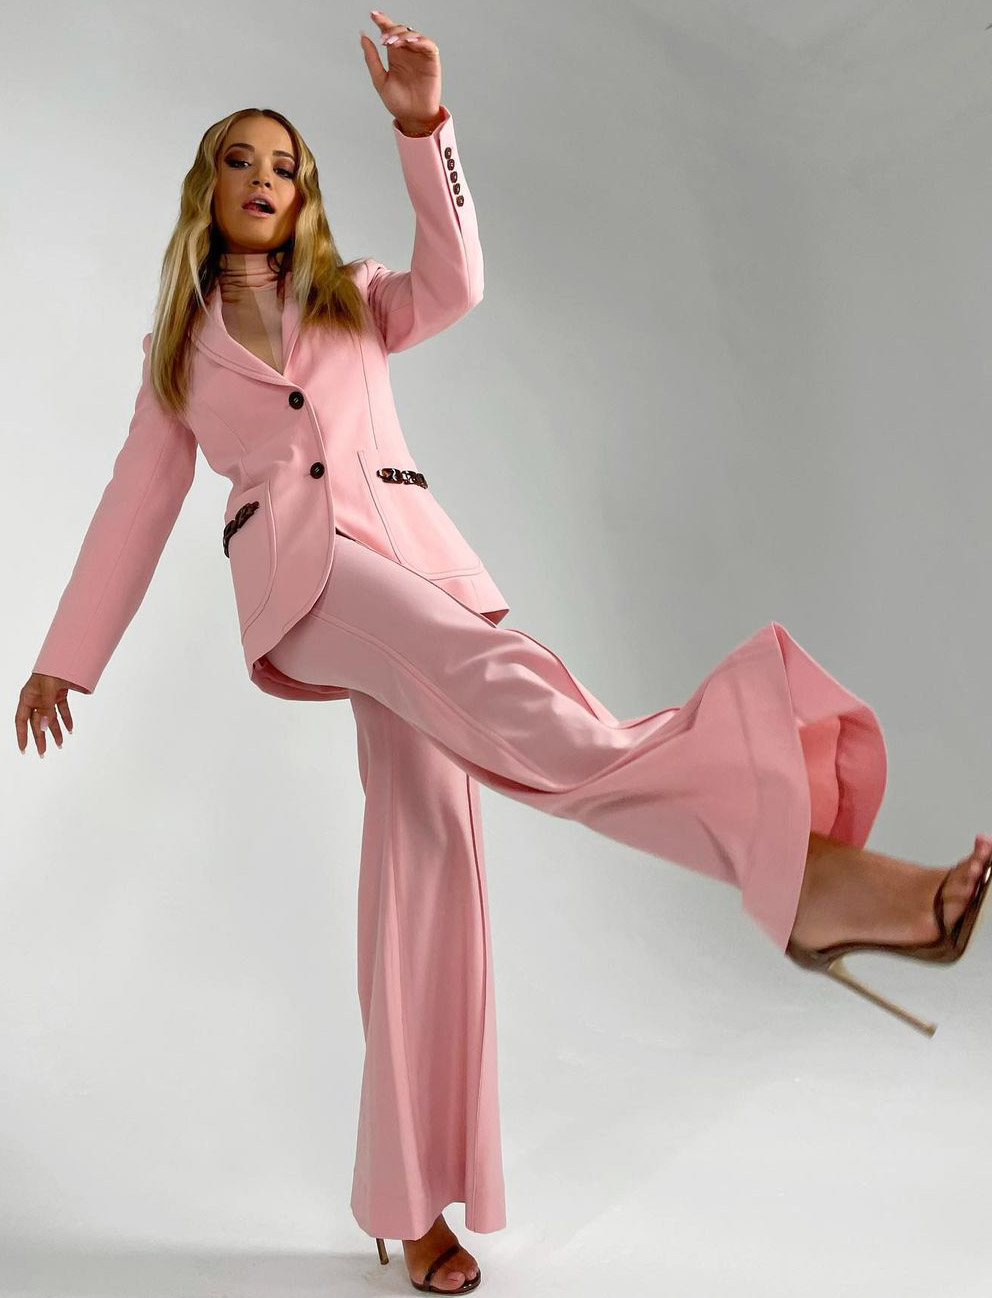 Rita Ora in the Concert Long Line jacket and Concert Wide Leg Trouser